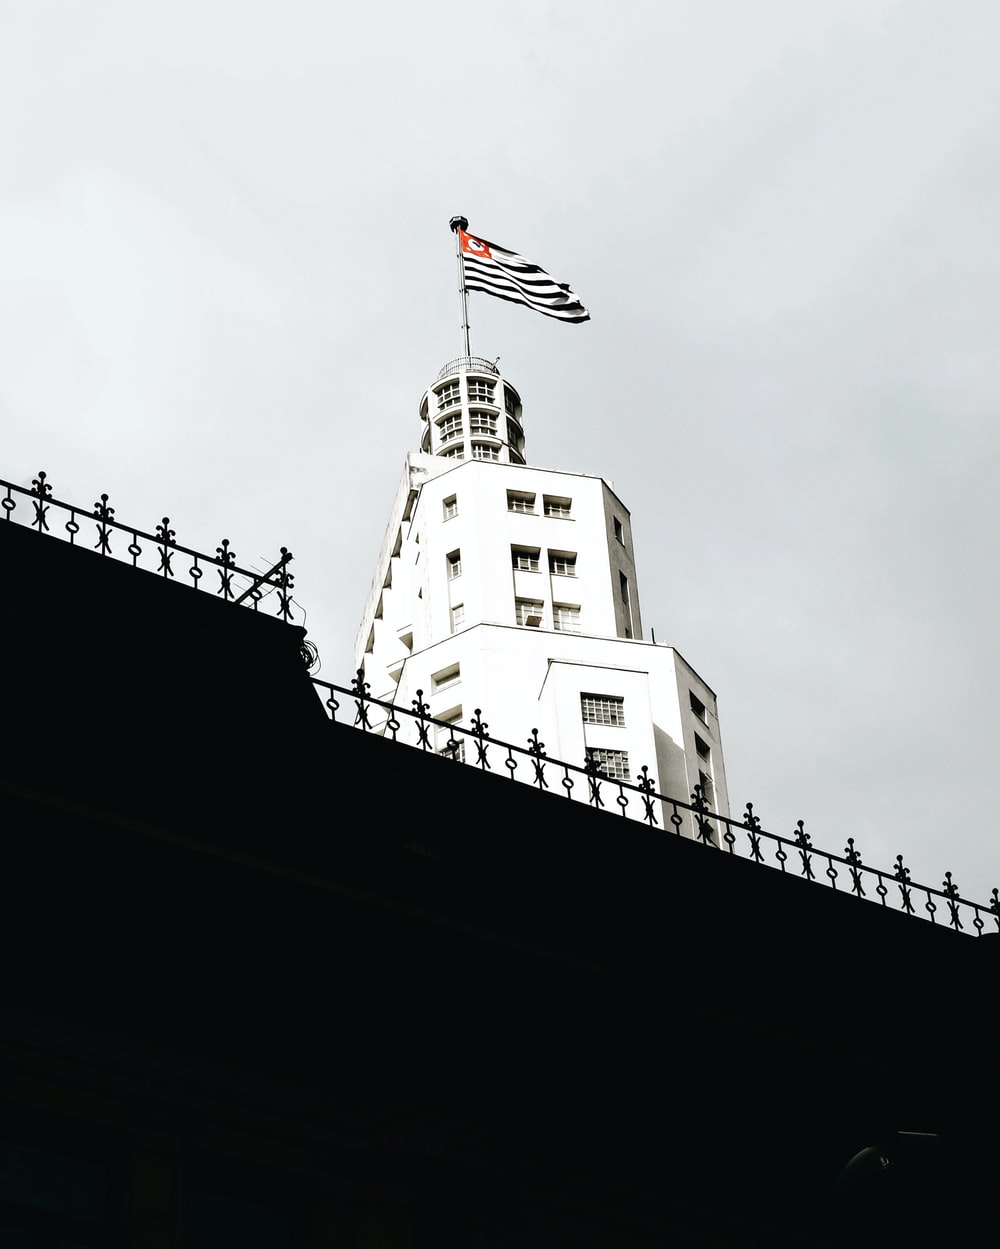 us a flag on top of white building